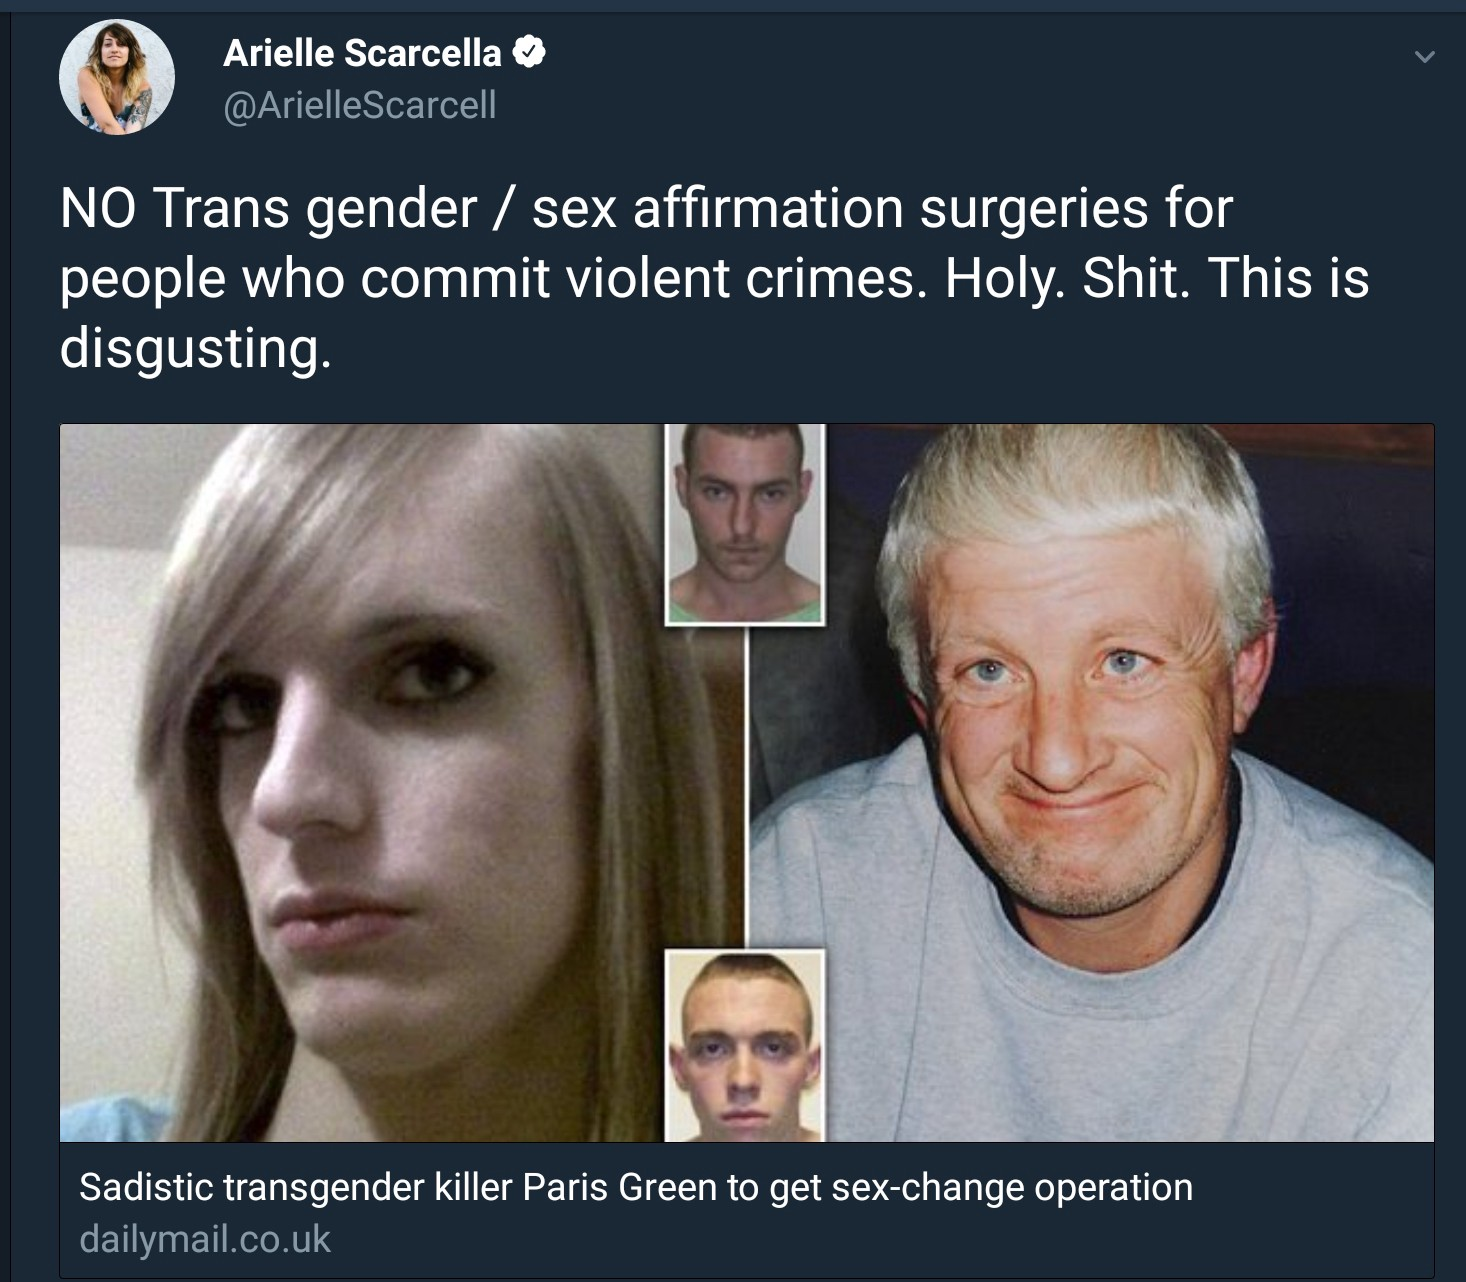 Persons having sex change operations